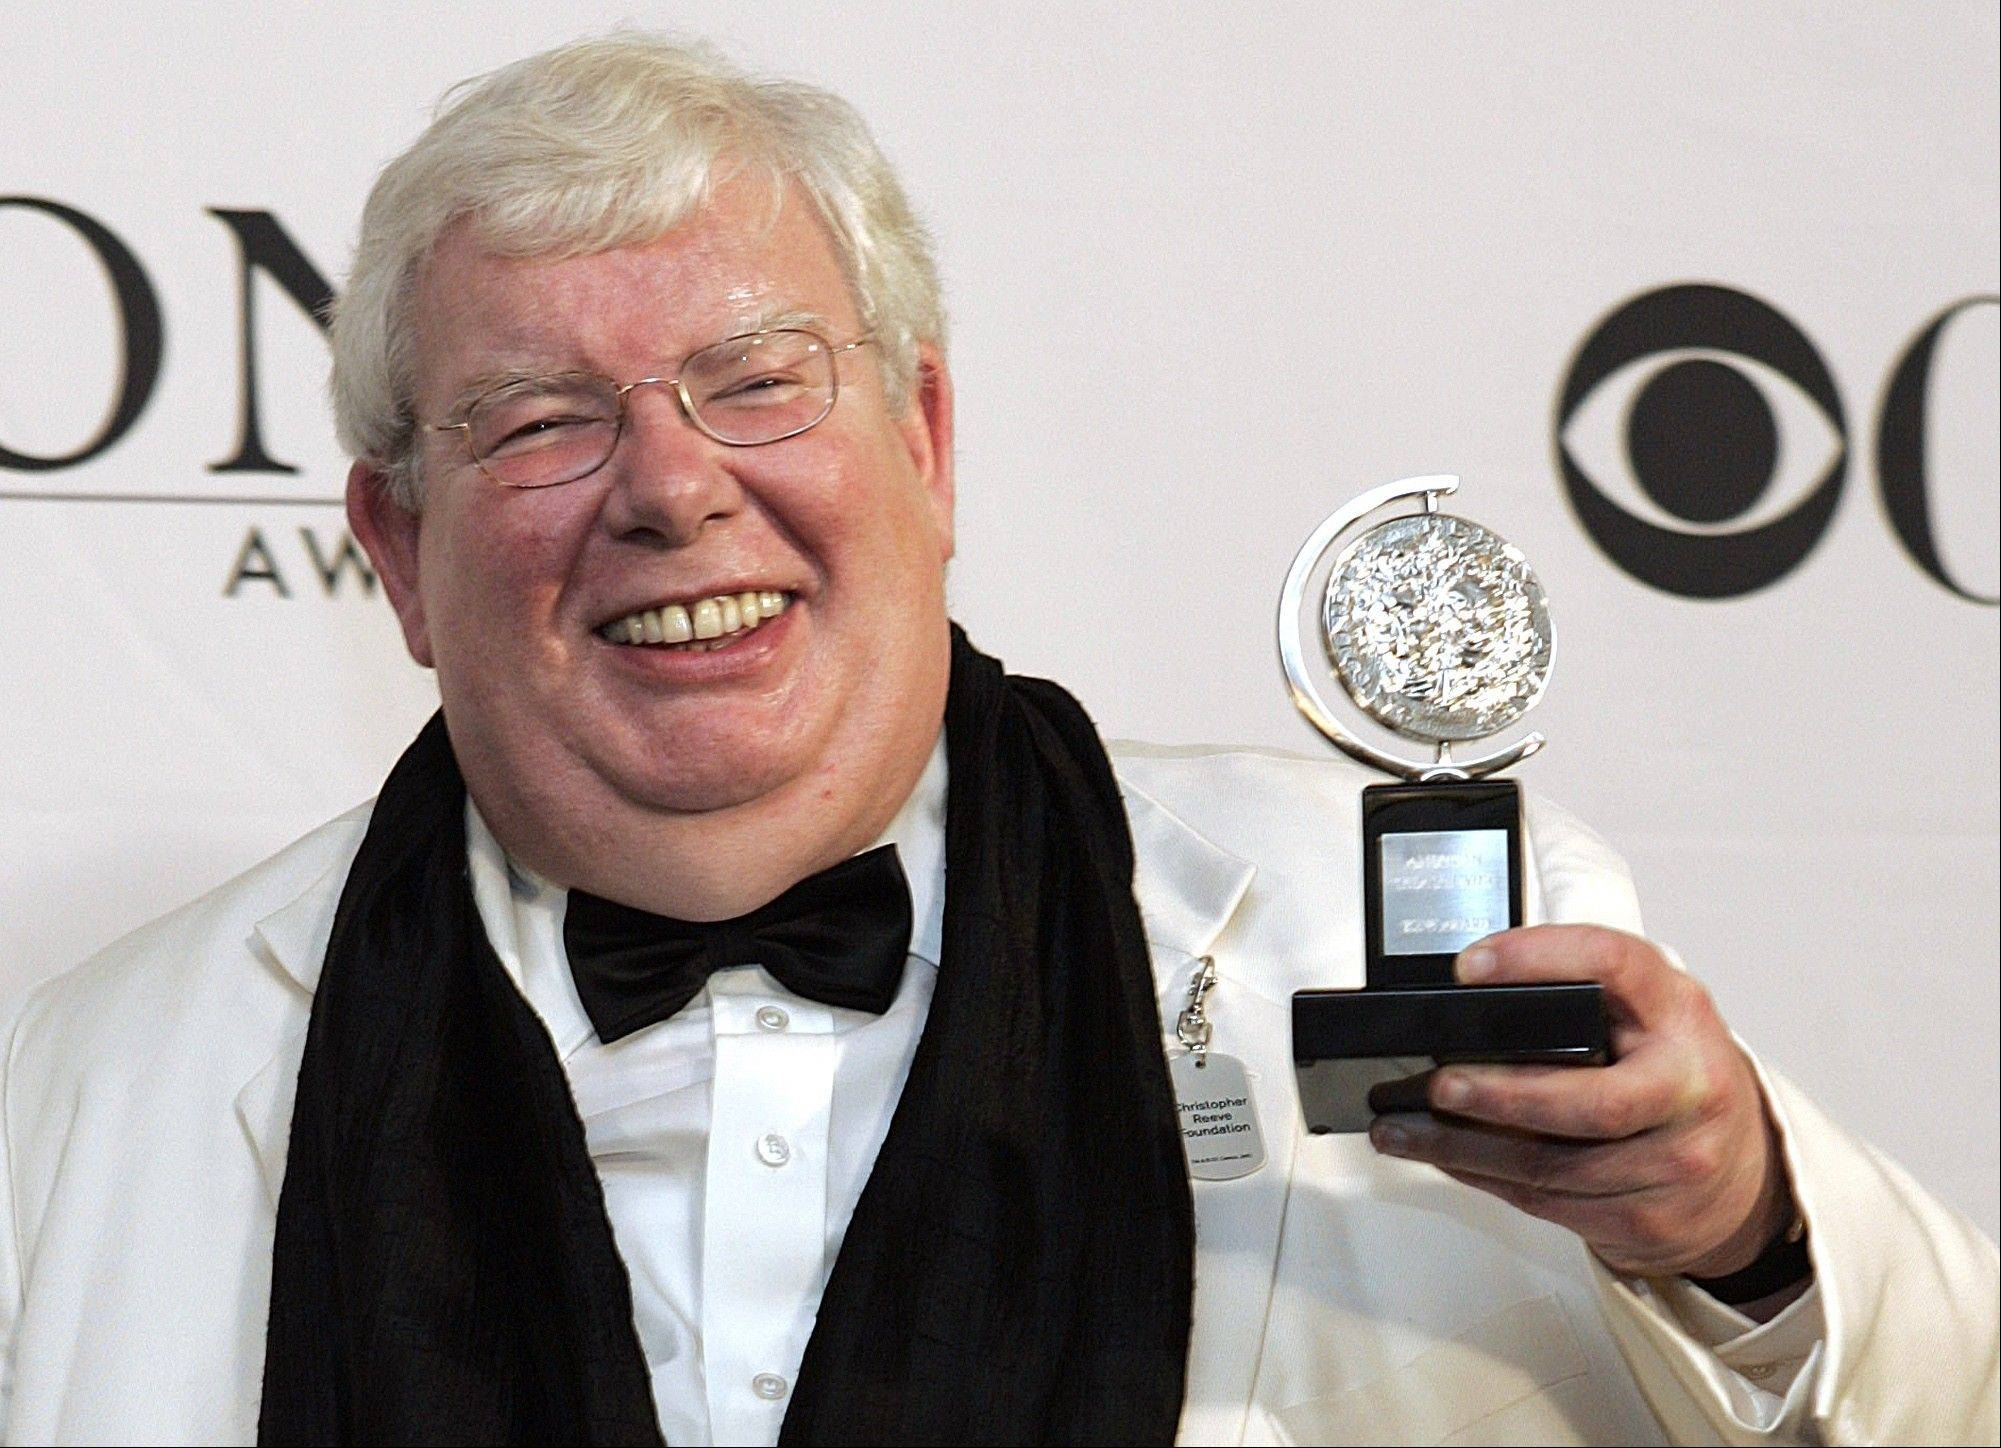 Richard Griffiths, the British actor who played the boy wizard�s unsympathetic Uncle Vernon in the �Harry Potter� movies, has died. He was 65.